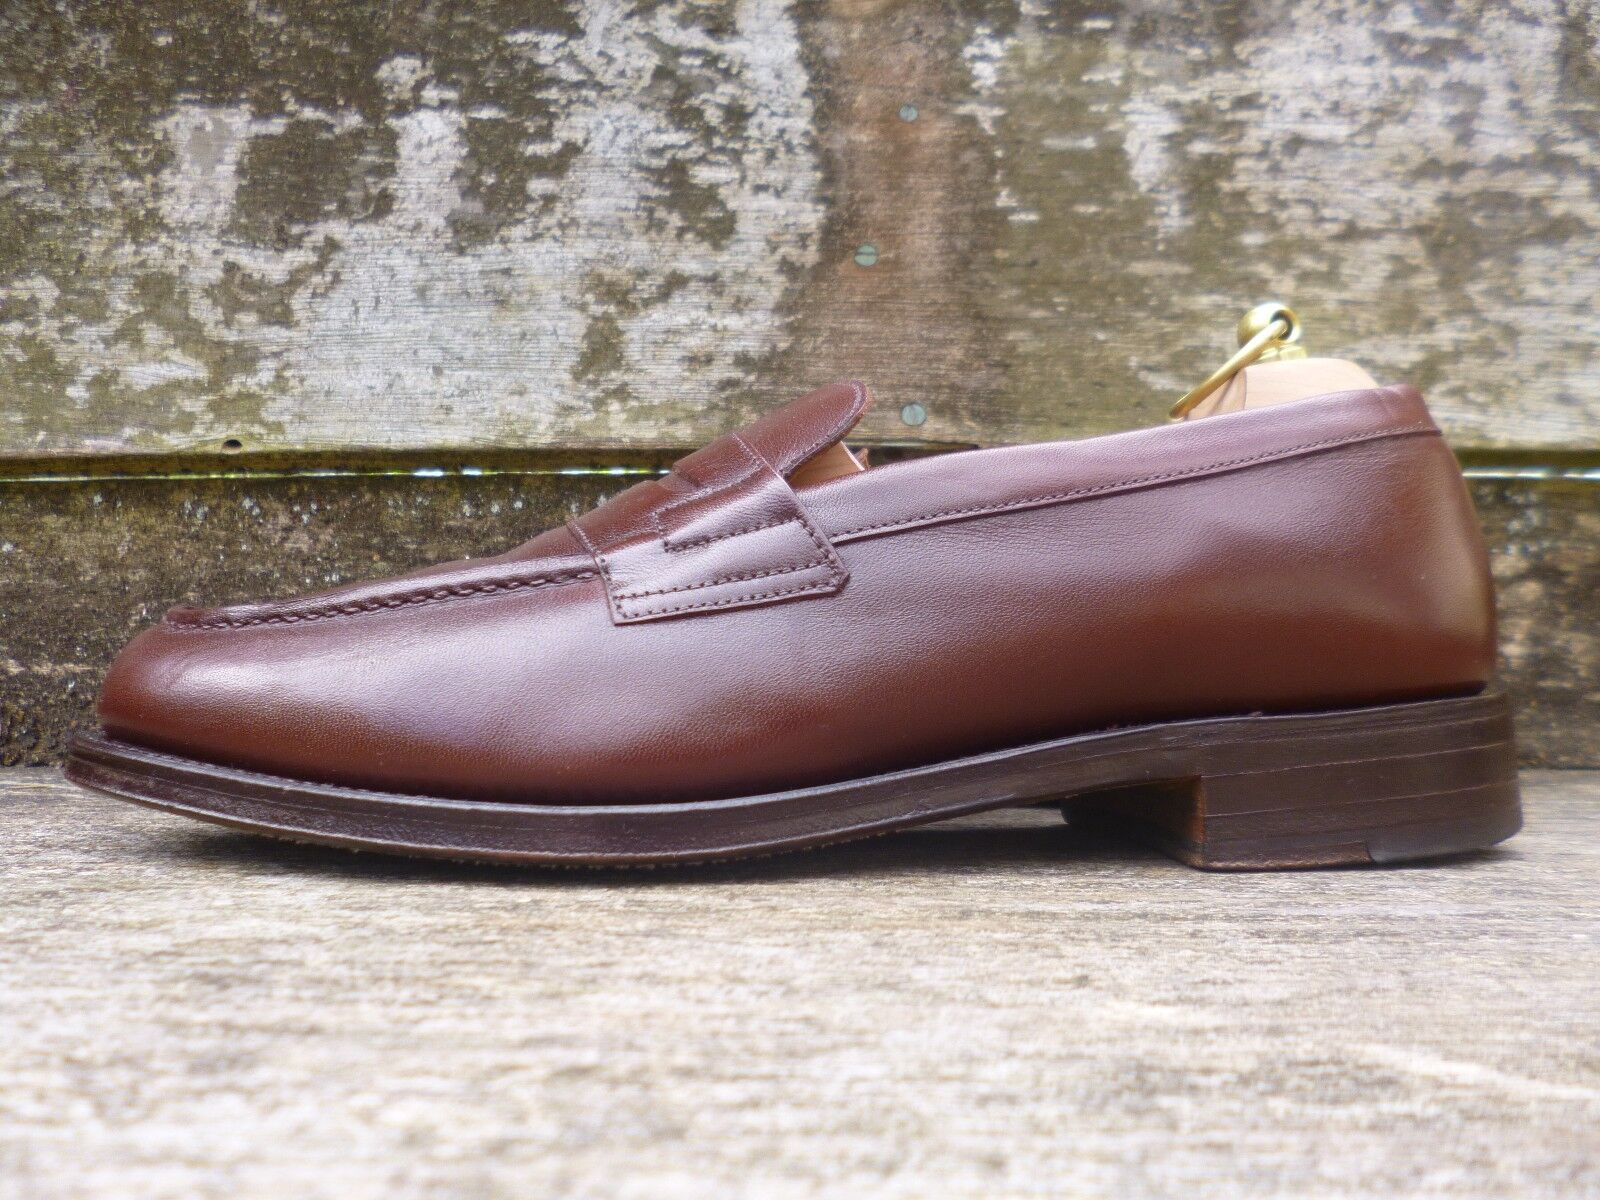 CHEANEY / CHURCH VINTAGE LOAFERS – BROWN / TAN EXCELLENT - UK 8 – EXCELLENT TAN CONDITION bda5f5